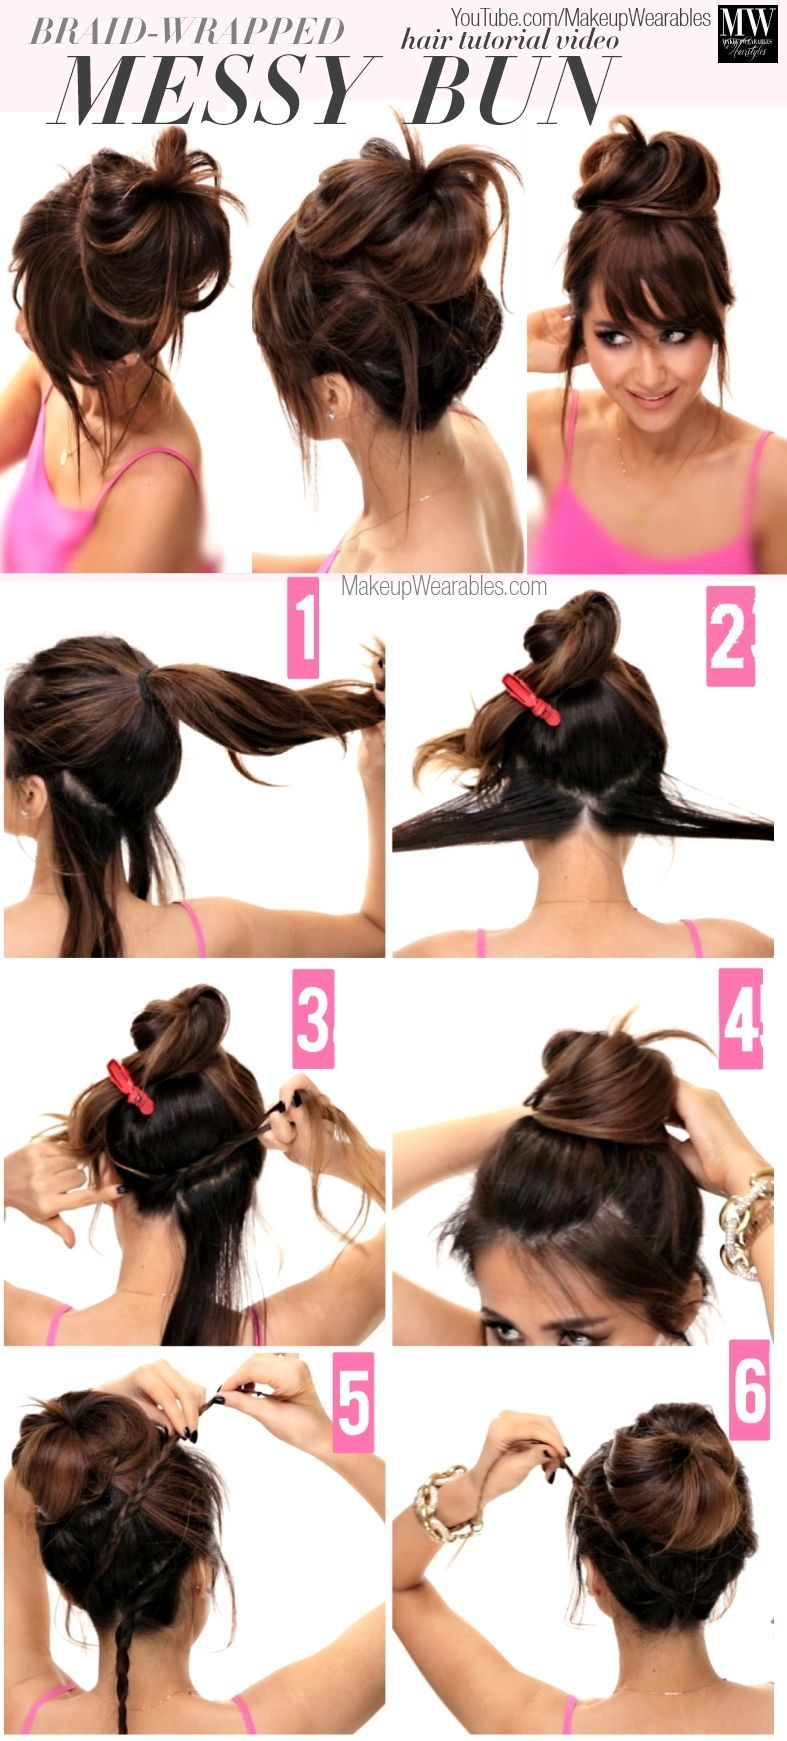 Braid wrapped messy bun pictures photos and images for facebook